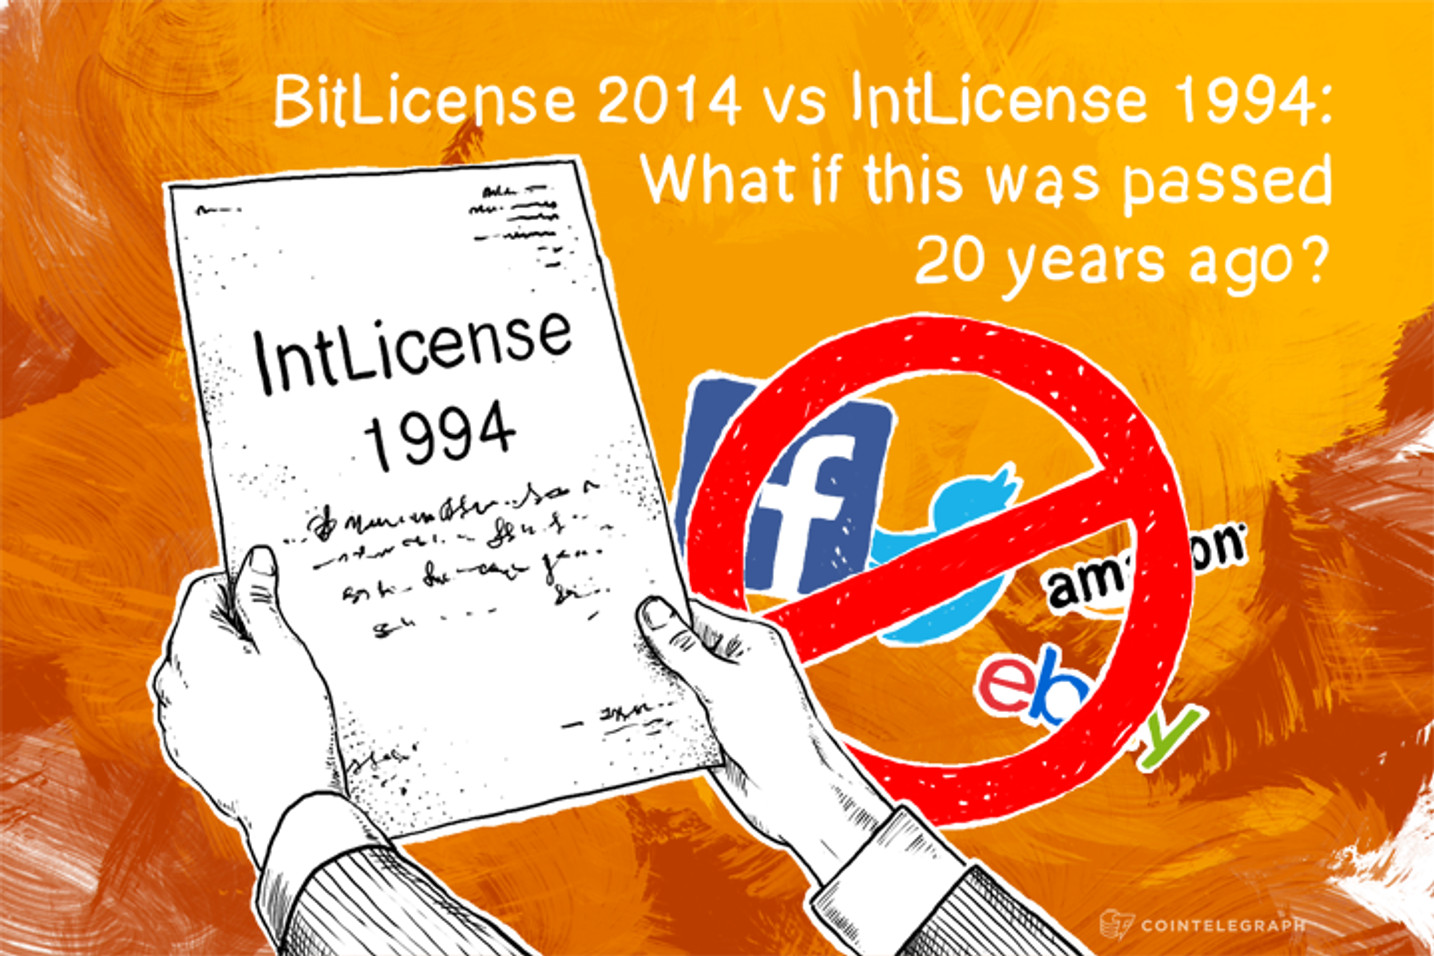 BitLicense 2014 vs IntLicense 1994: What if this had passed 20 years ago?